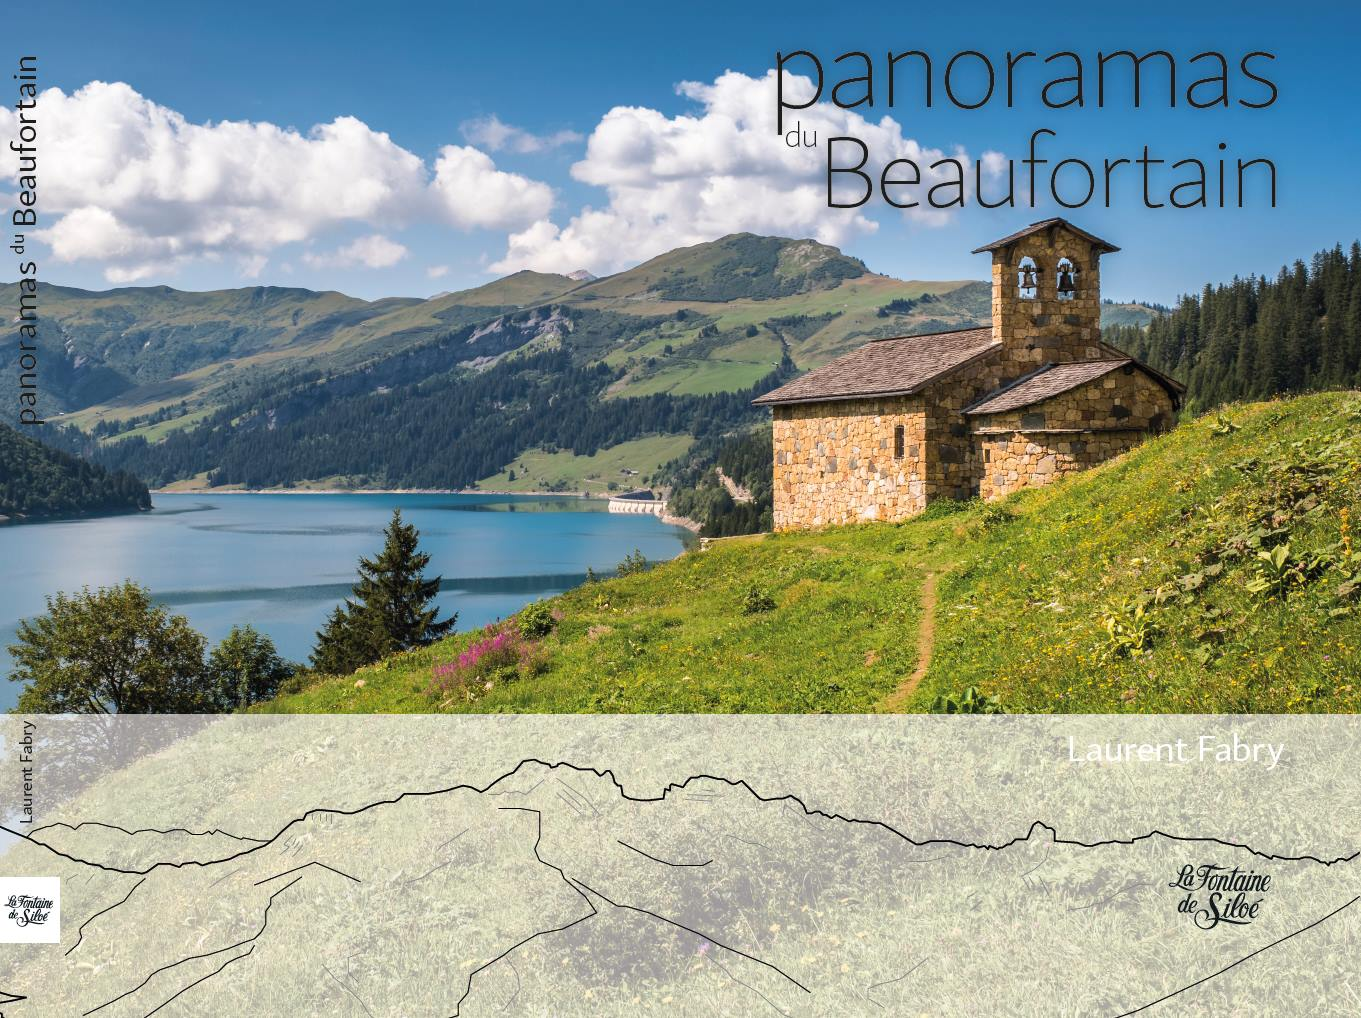 Panoramas Du Beaufortain, La Fontaine De Siloé, Laurent FABRY Photographe